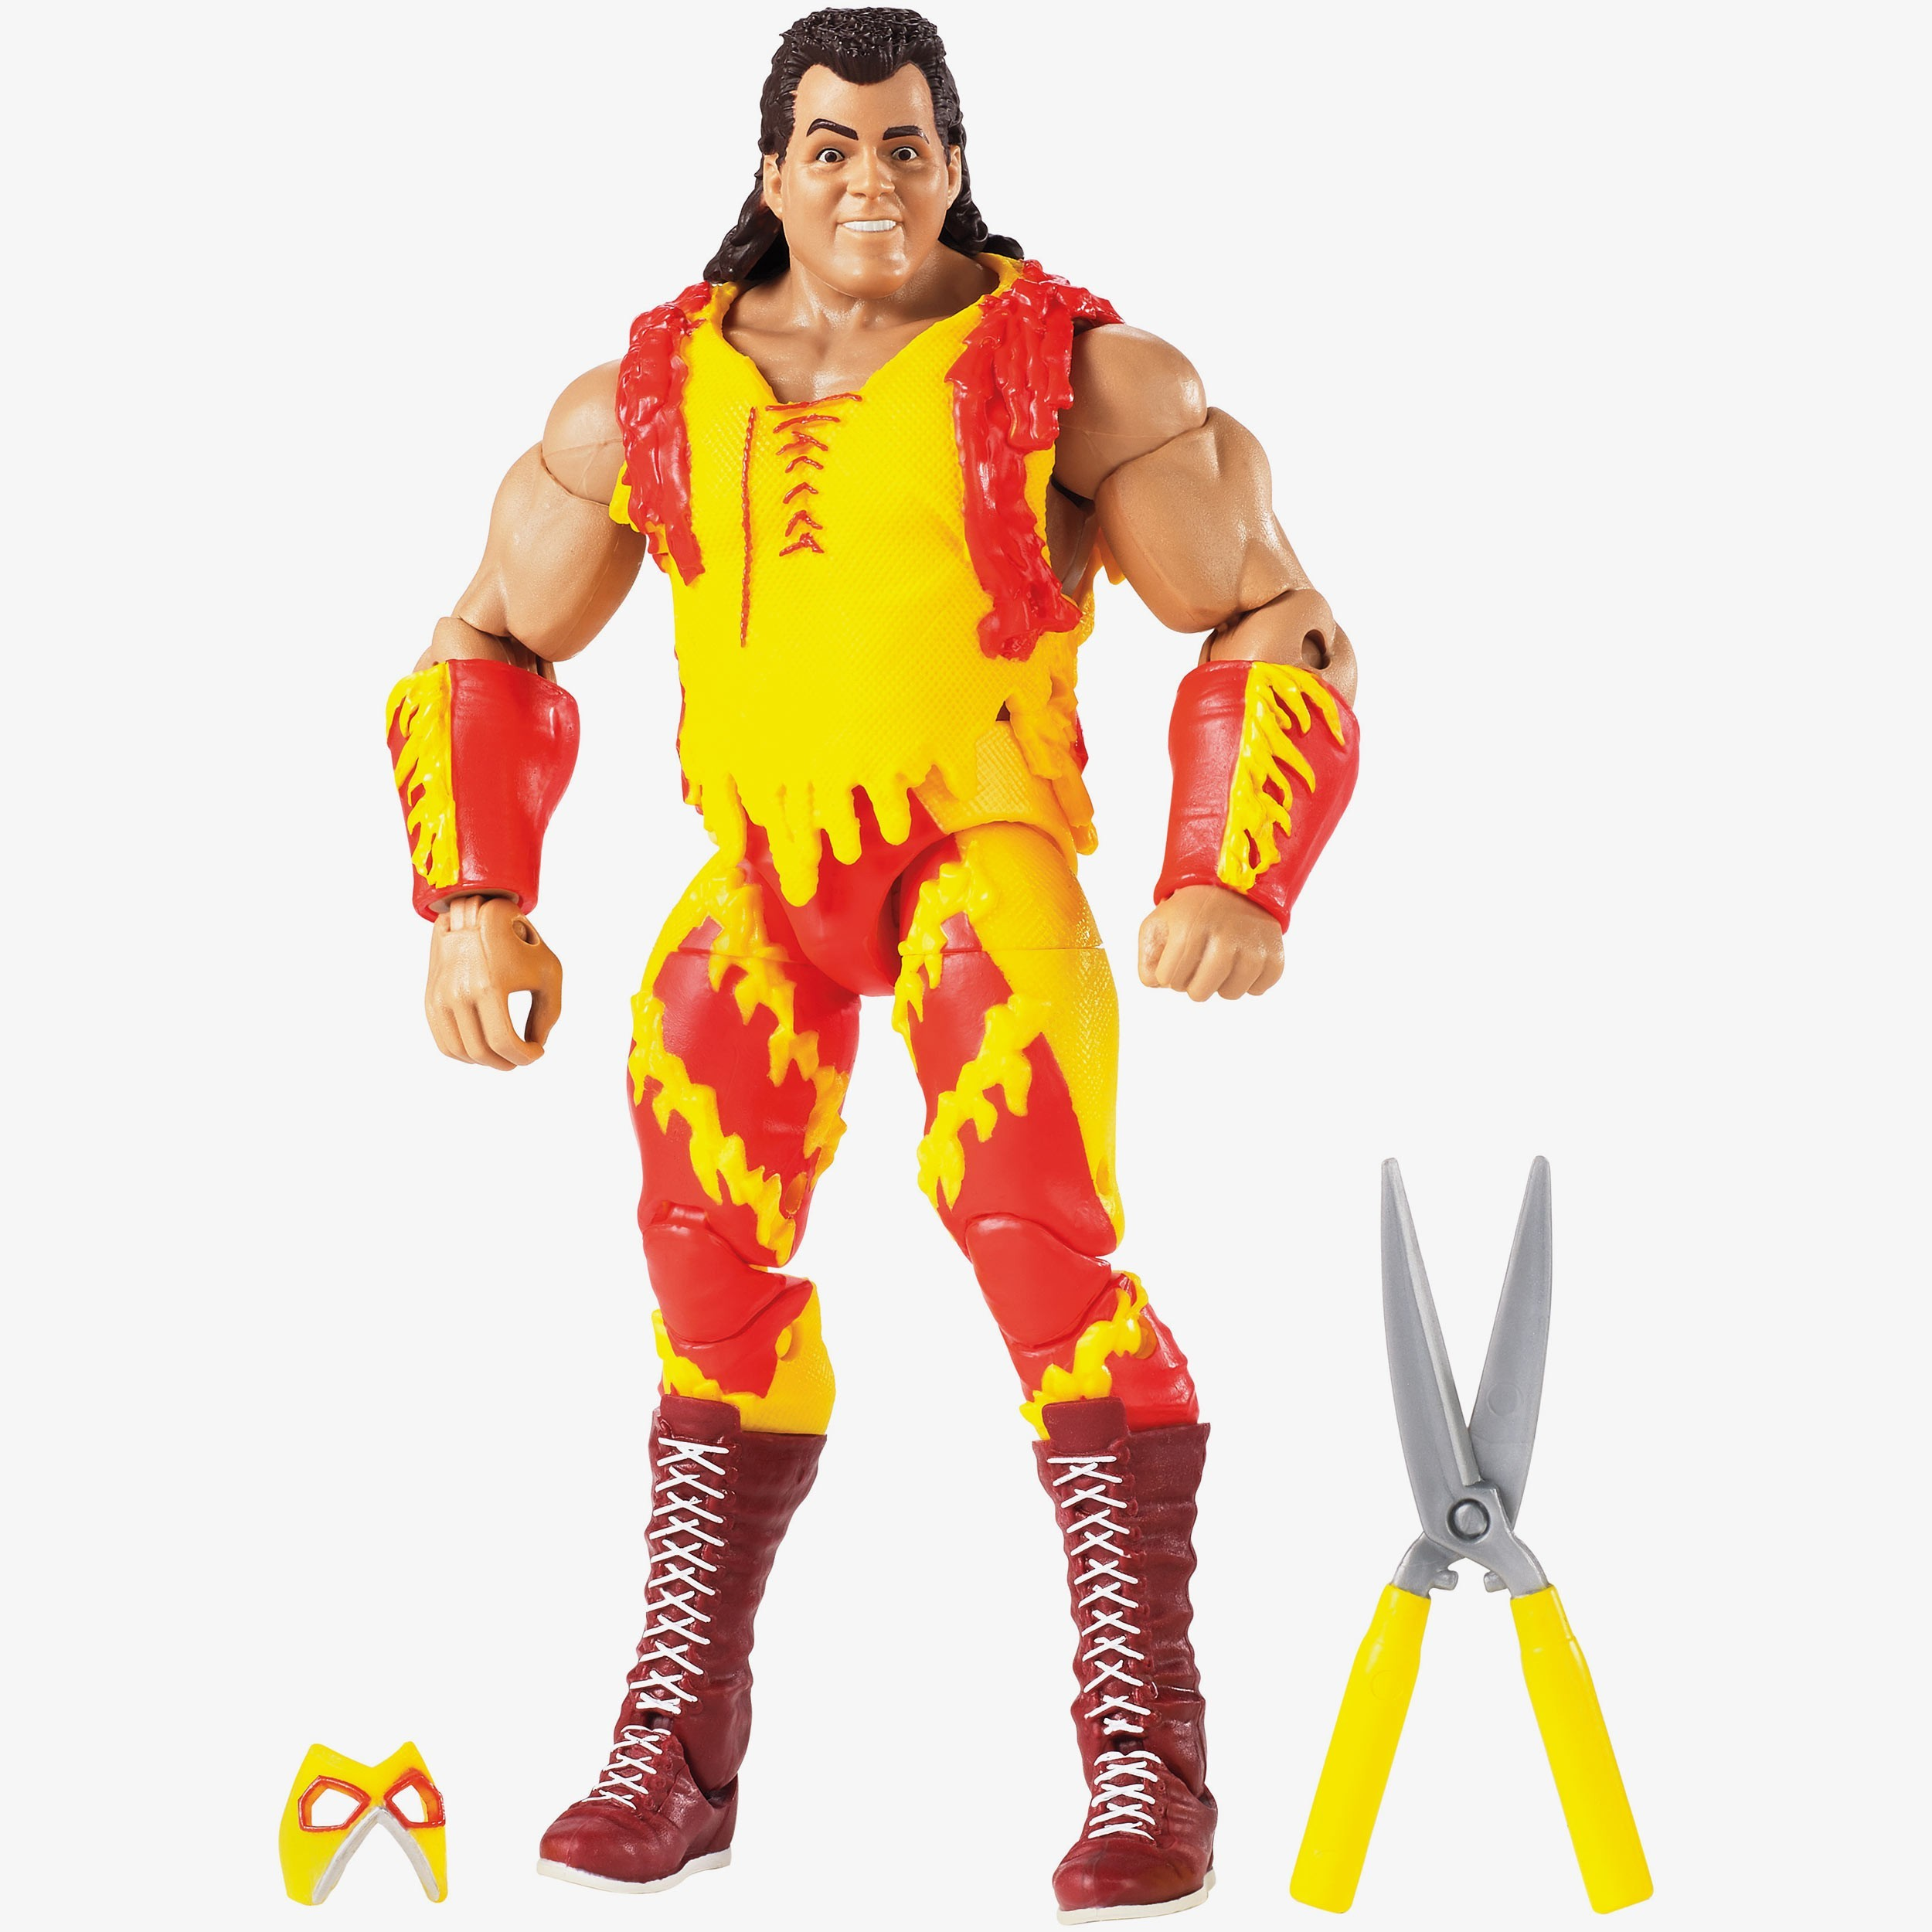 Image result for wrestlemania 34 mattel beefcake